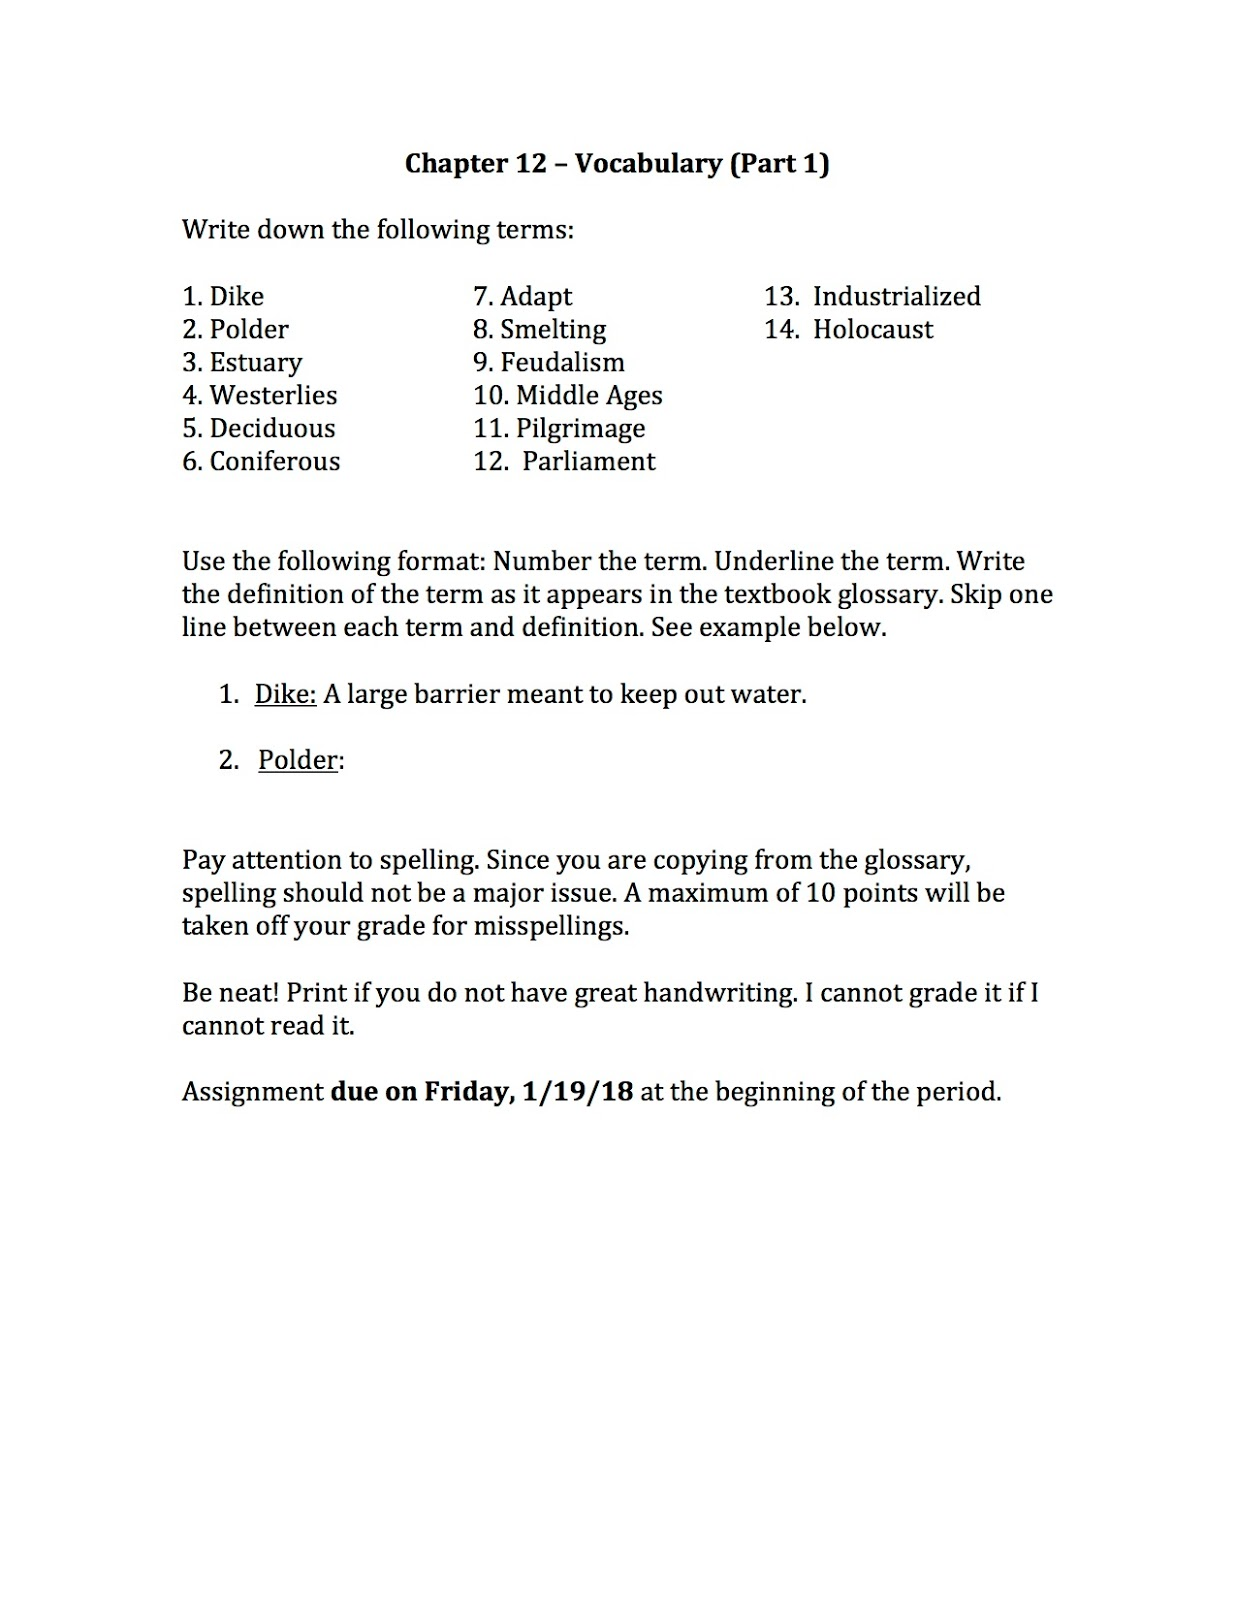 Worksheets Vocabulary Builder Worksheets ehms world cultures geography chapter 12 vocabulary and yesterday the kids were assigned standard assignment attached below it is due at beginning of class period to